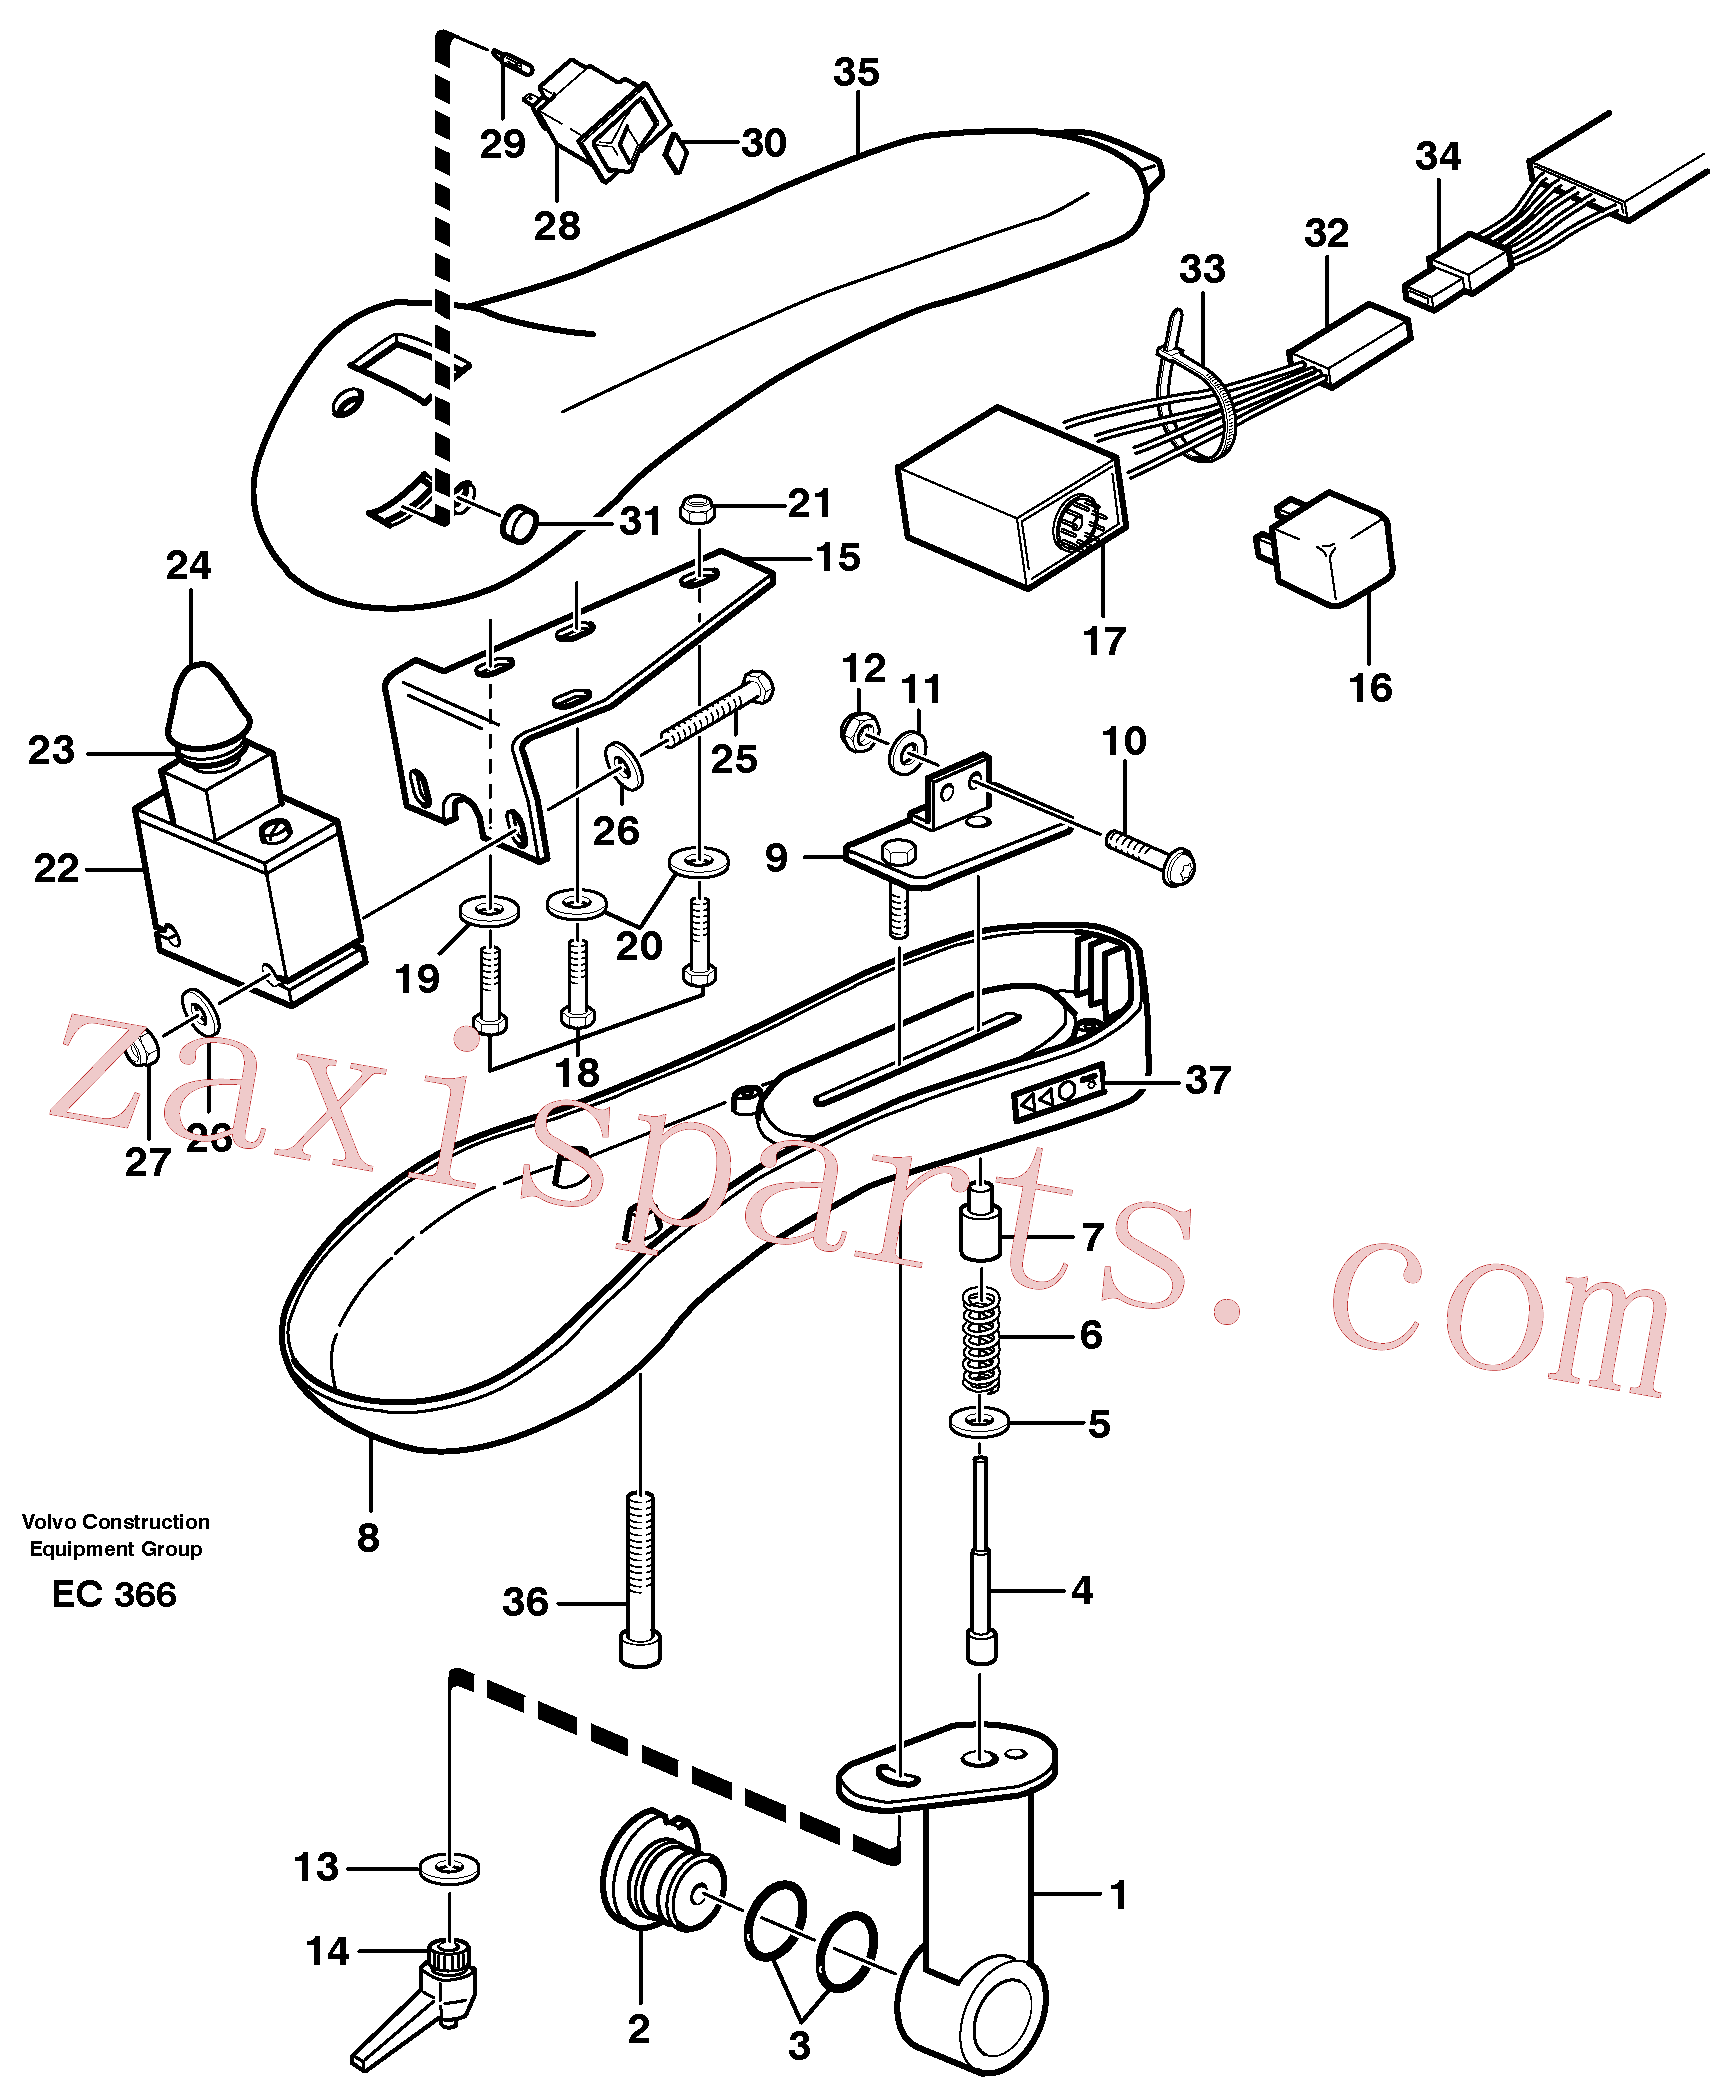 VOE969440 for Volvo Arm rest.(EC366 assembly)